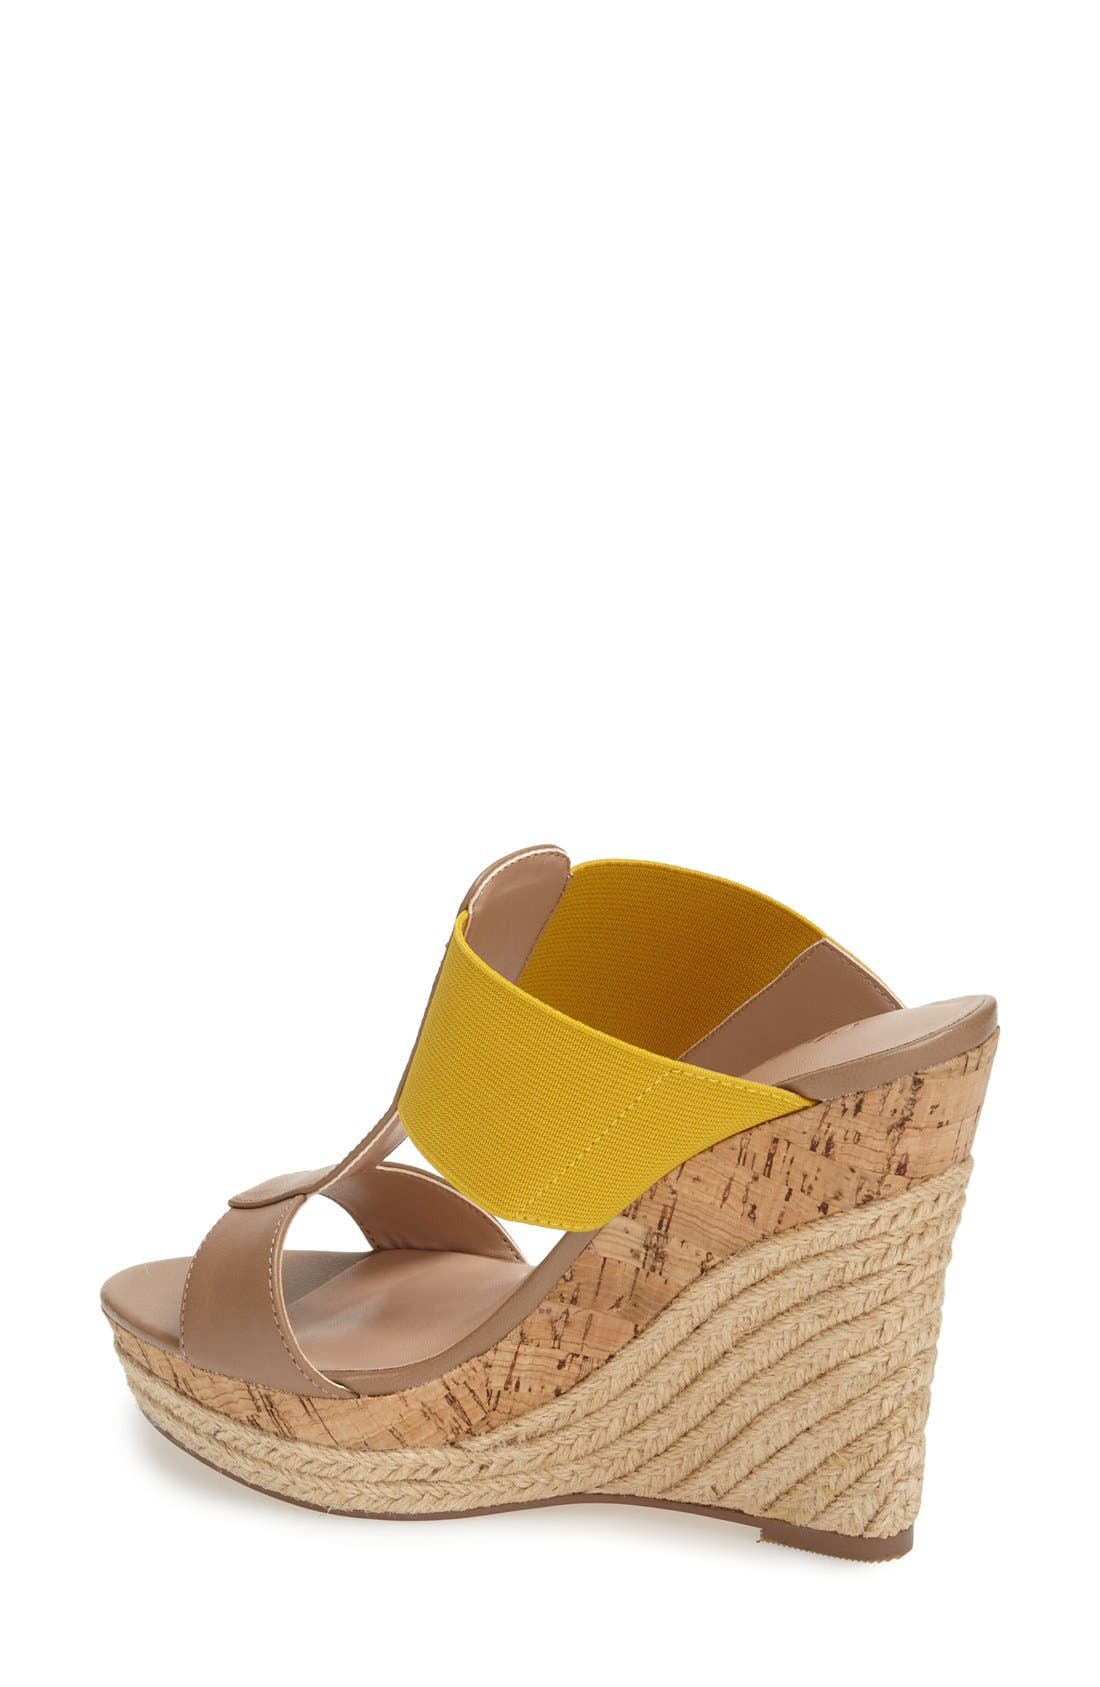 Alternate Image 2  - Charles by Charles David 'Alto' Espadrille Wedge Sandal (Women)